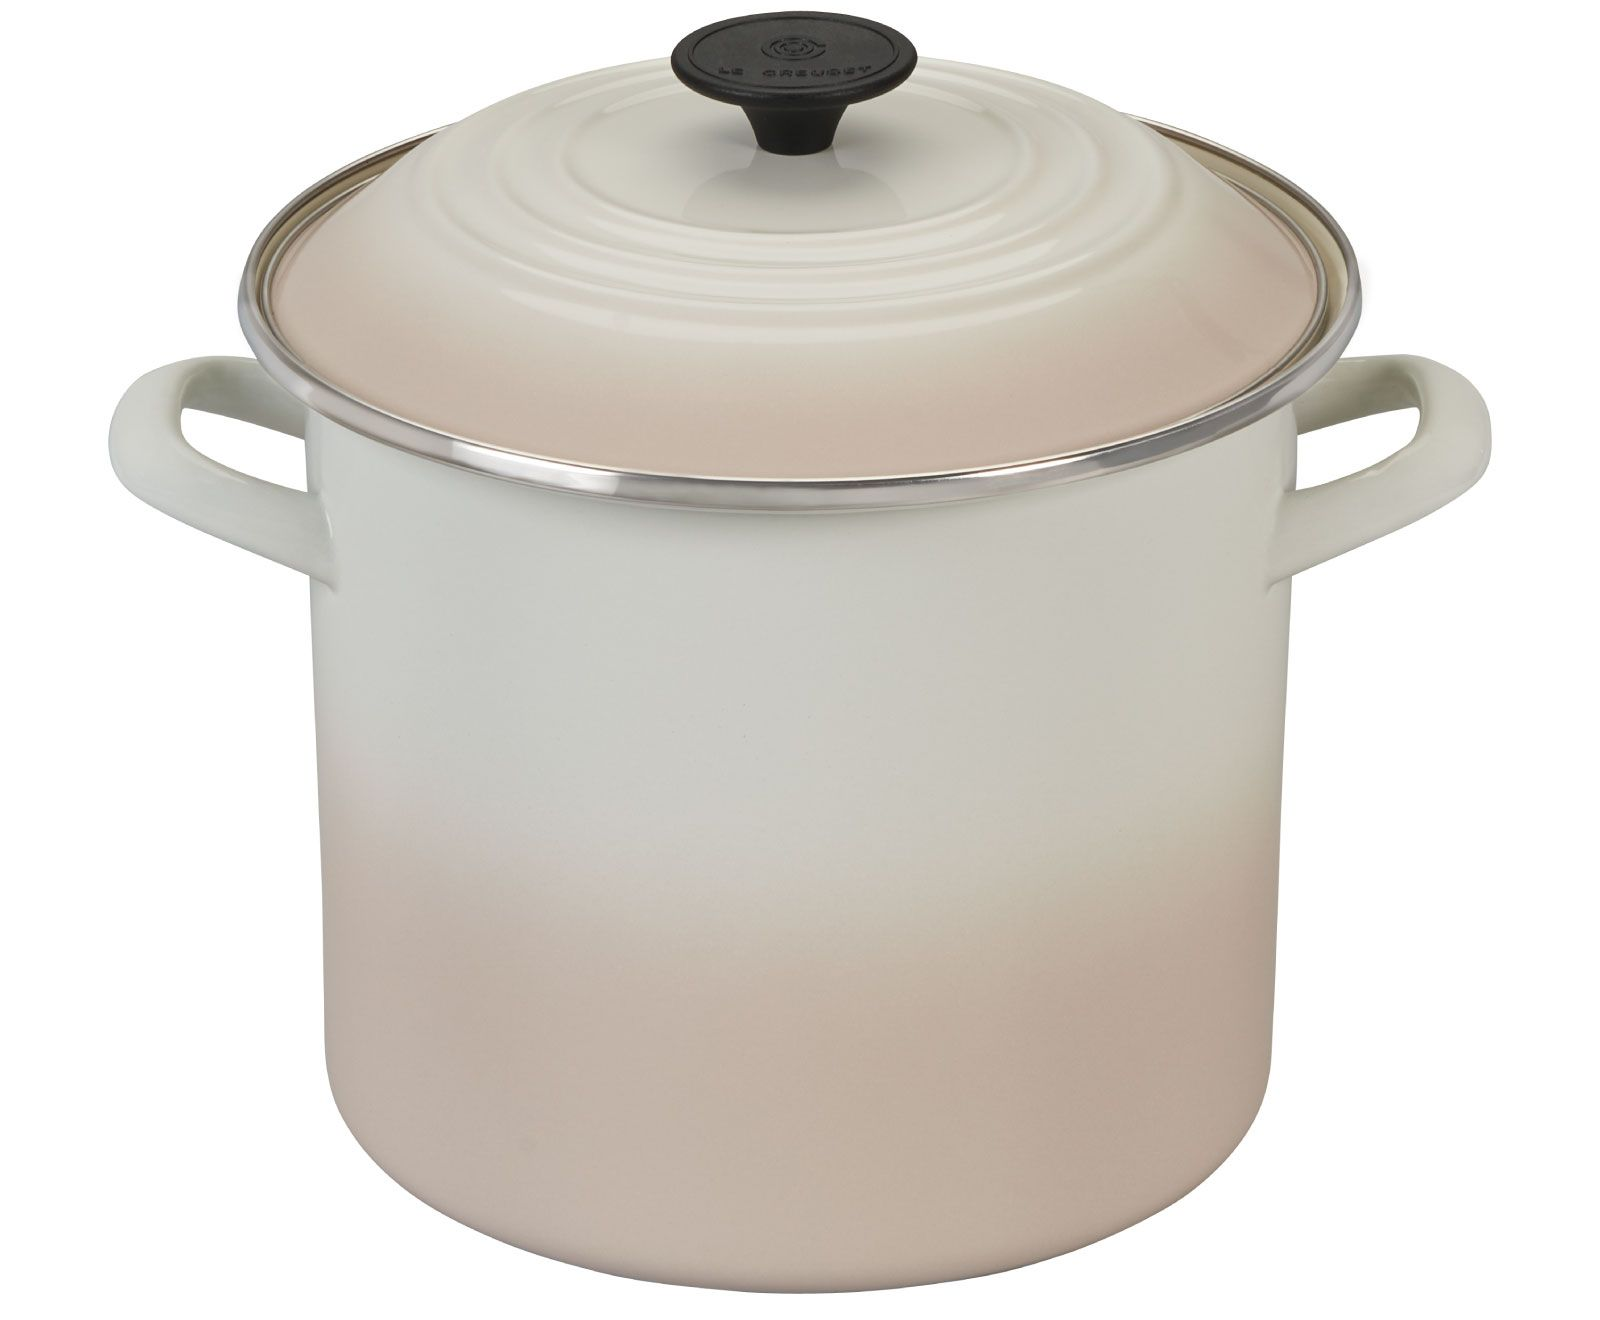 Le Creuset Stockpot Meringue Profile Design Steel Rims Meringue